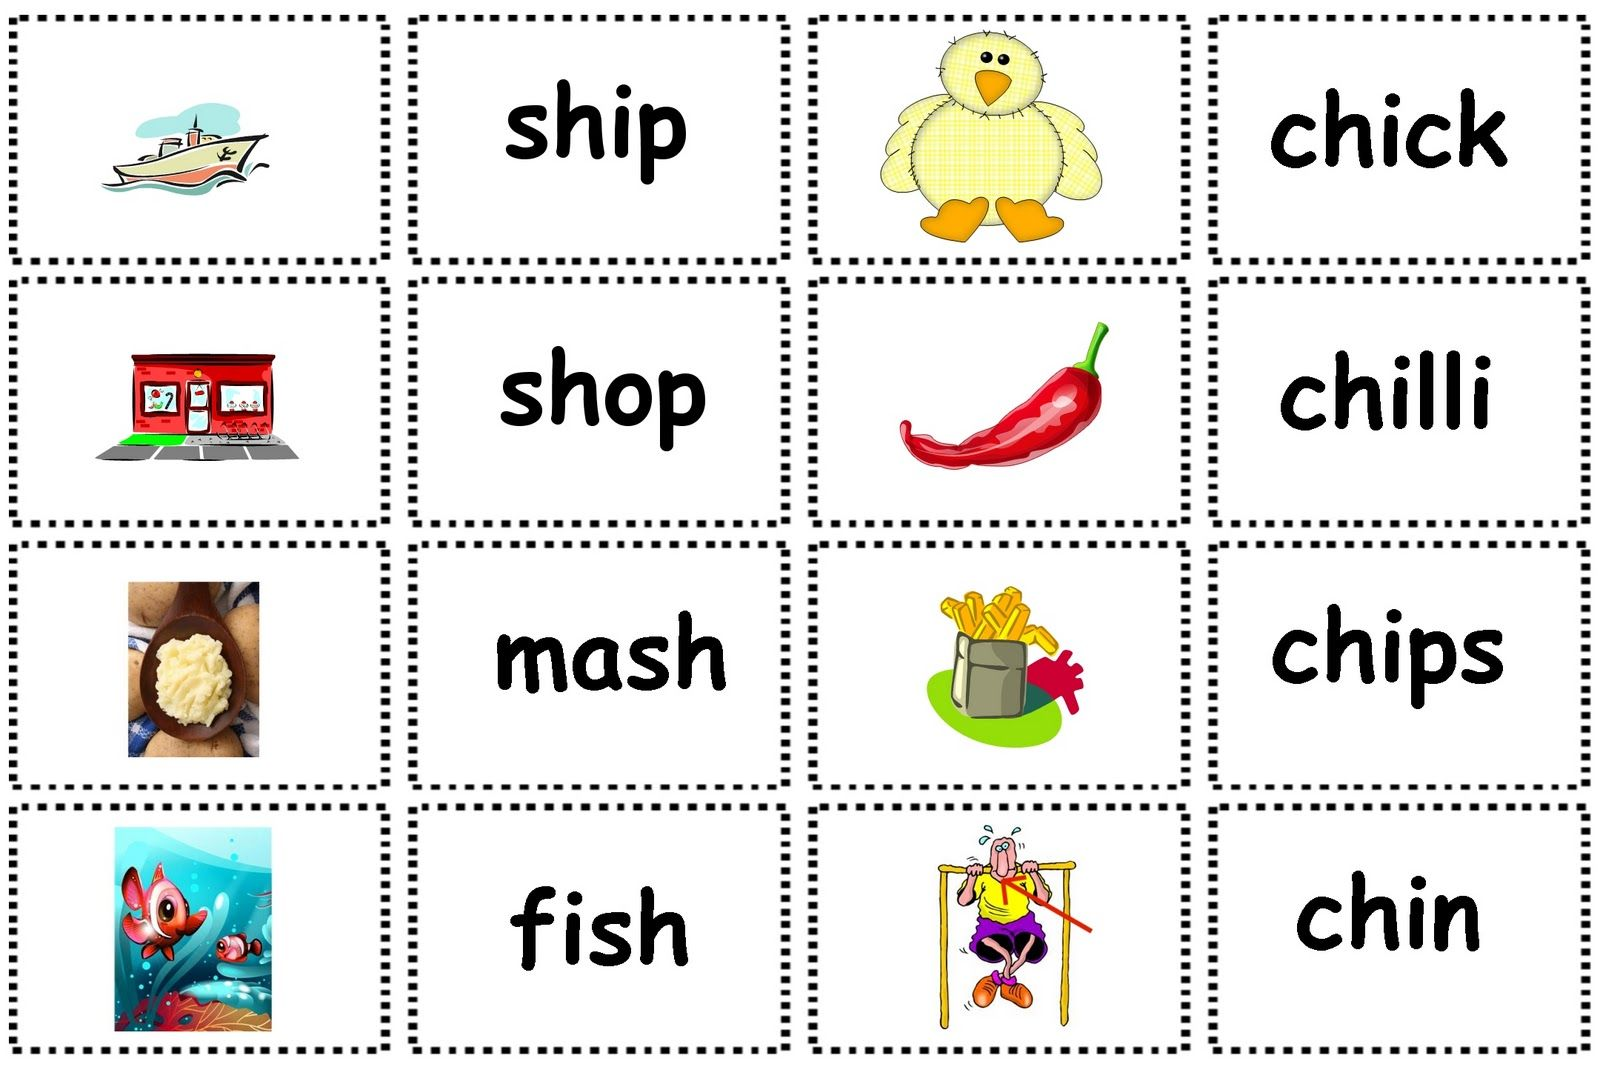 worksheet Sh Worksheets sh worksheets to print am making a few of these at the moment due to